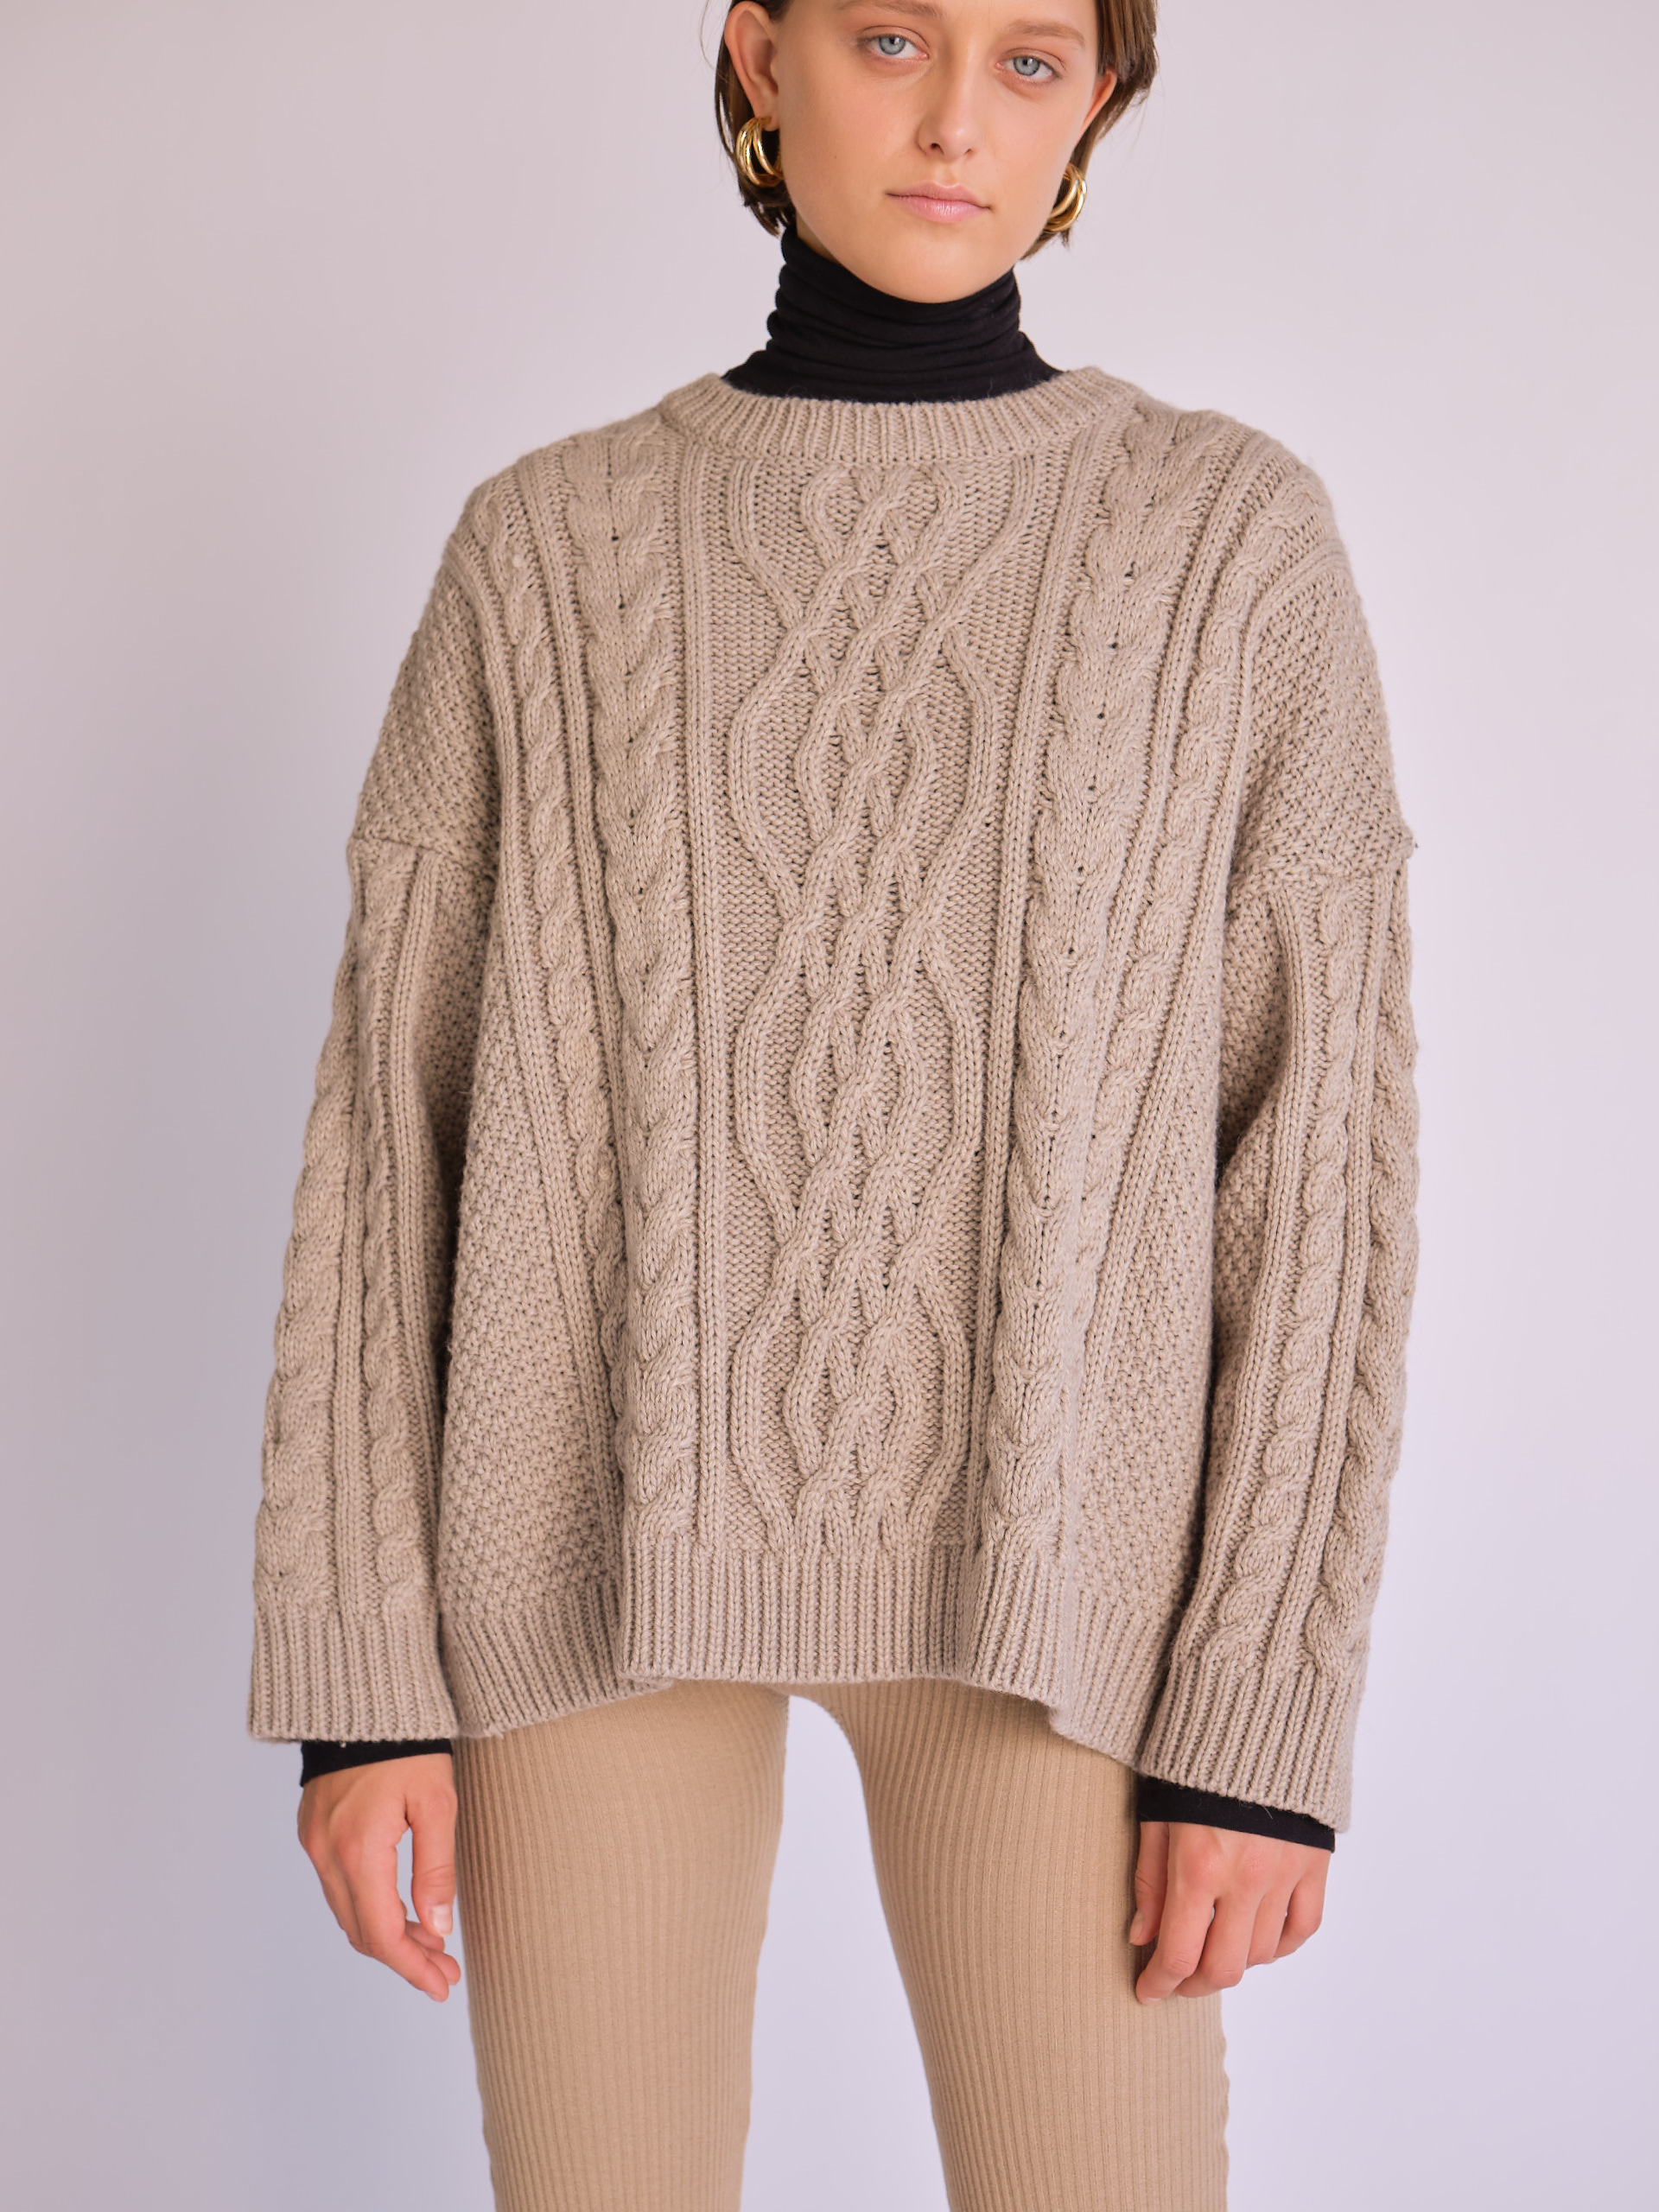 MijeongPark_beige cable sweater